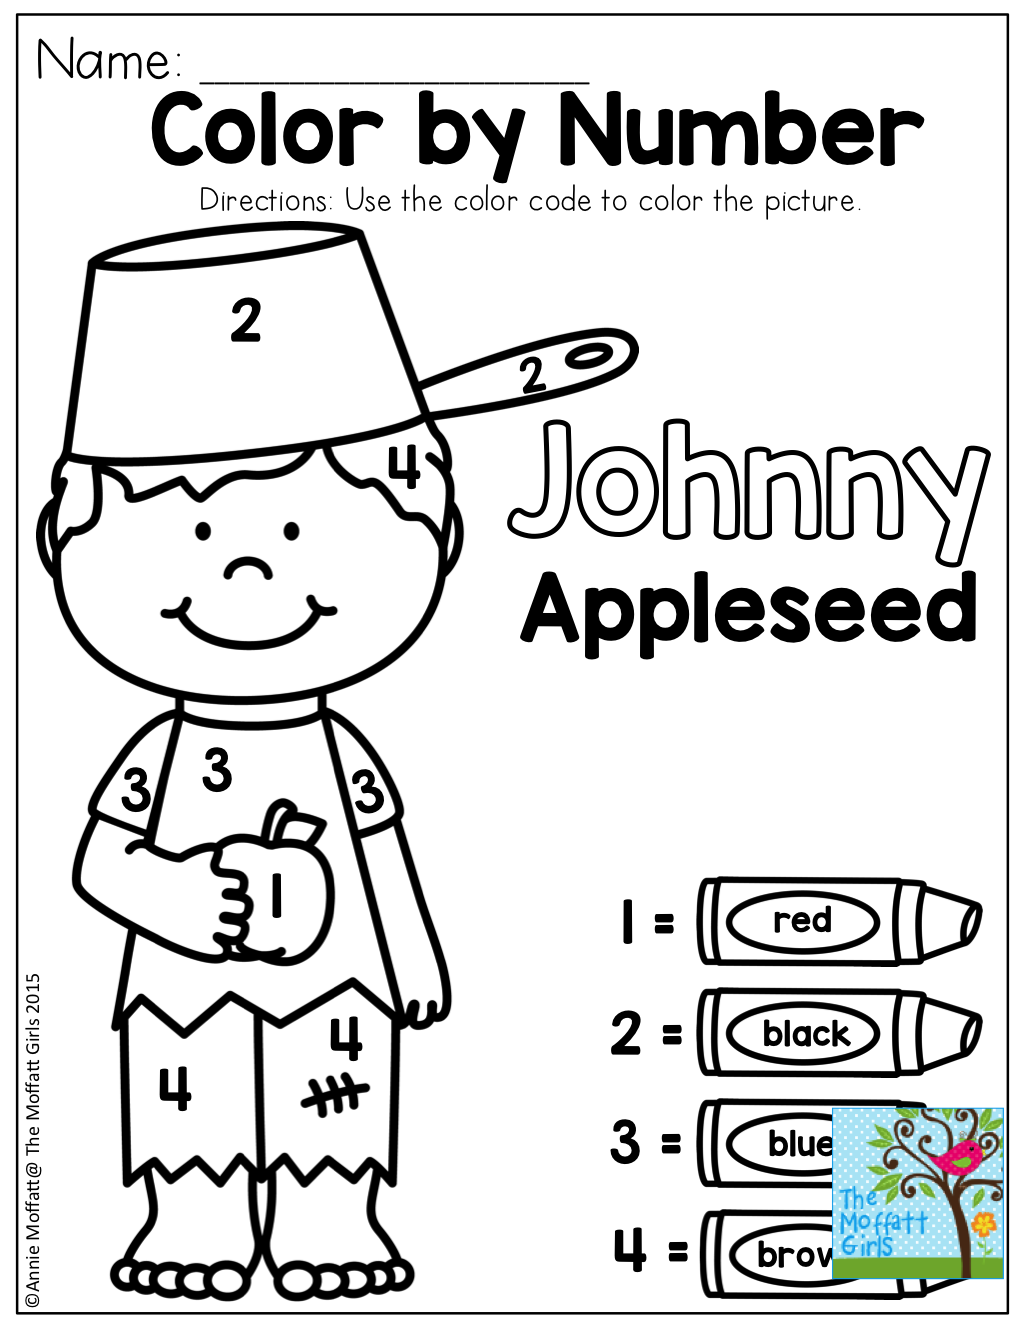 color by number with johnny appleseed tons of fun printables to